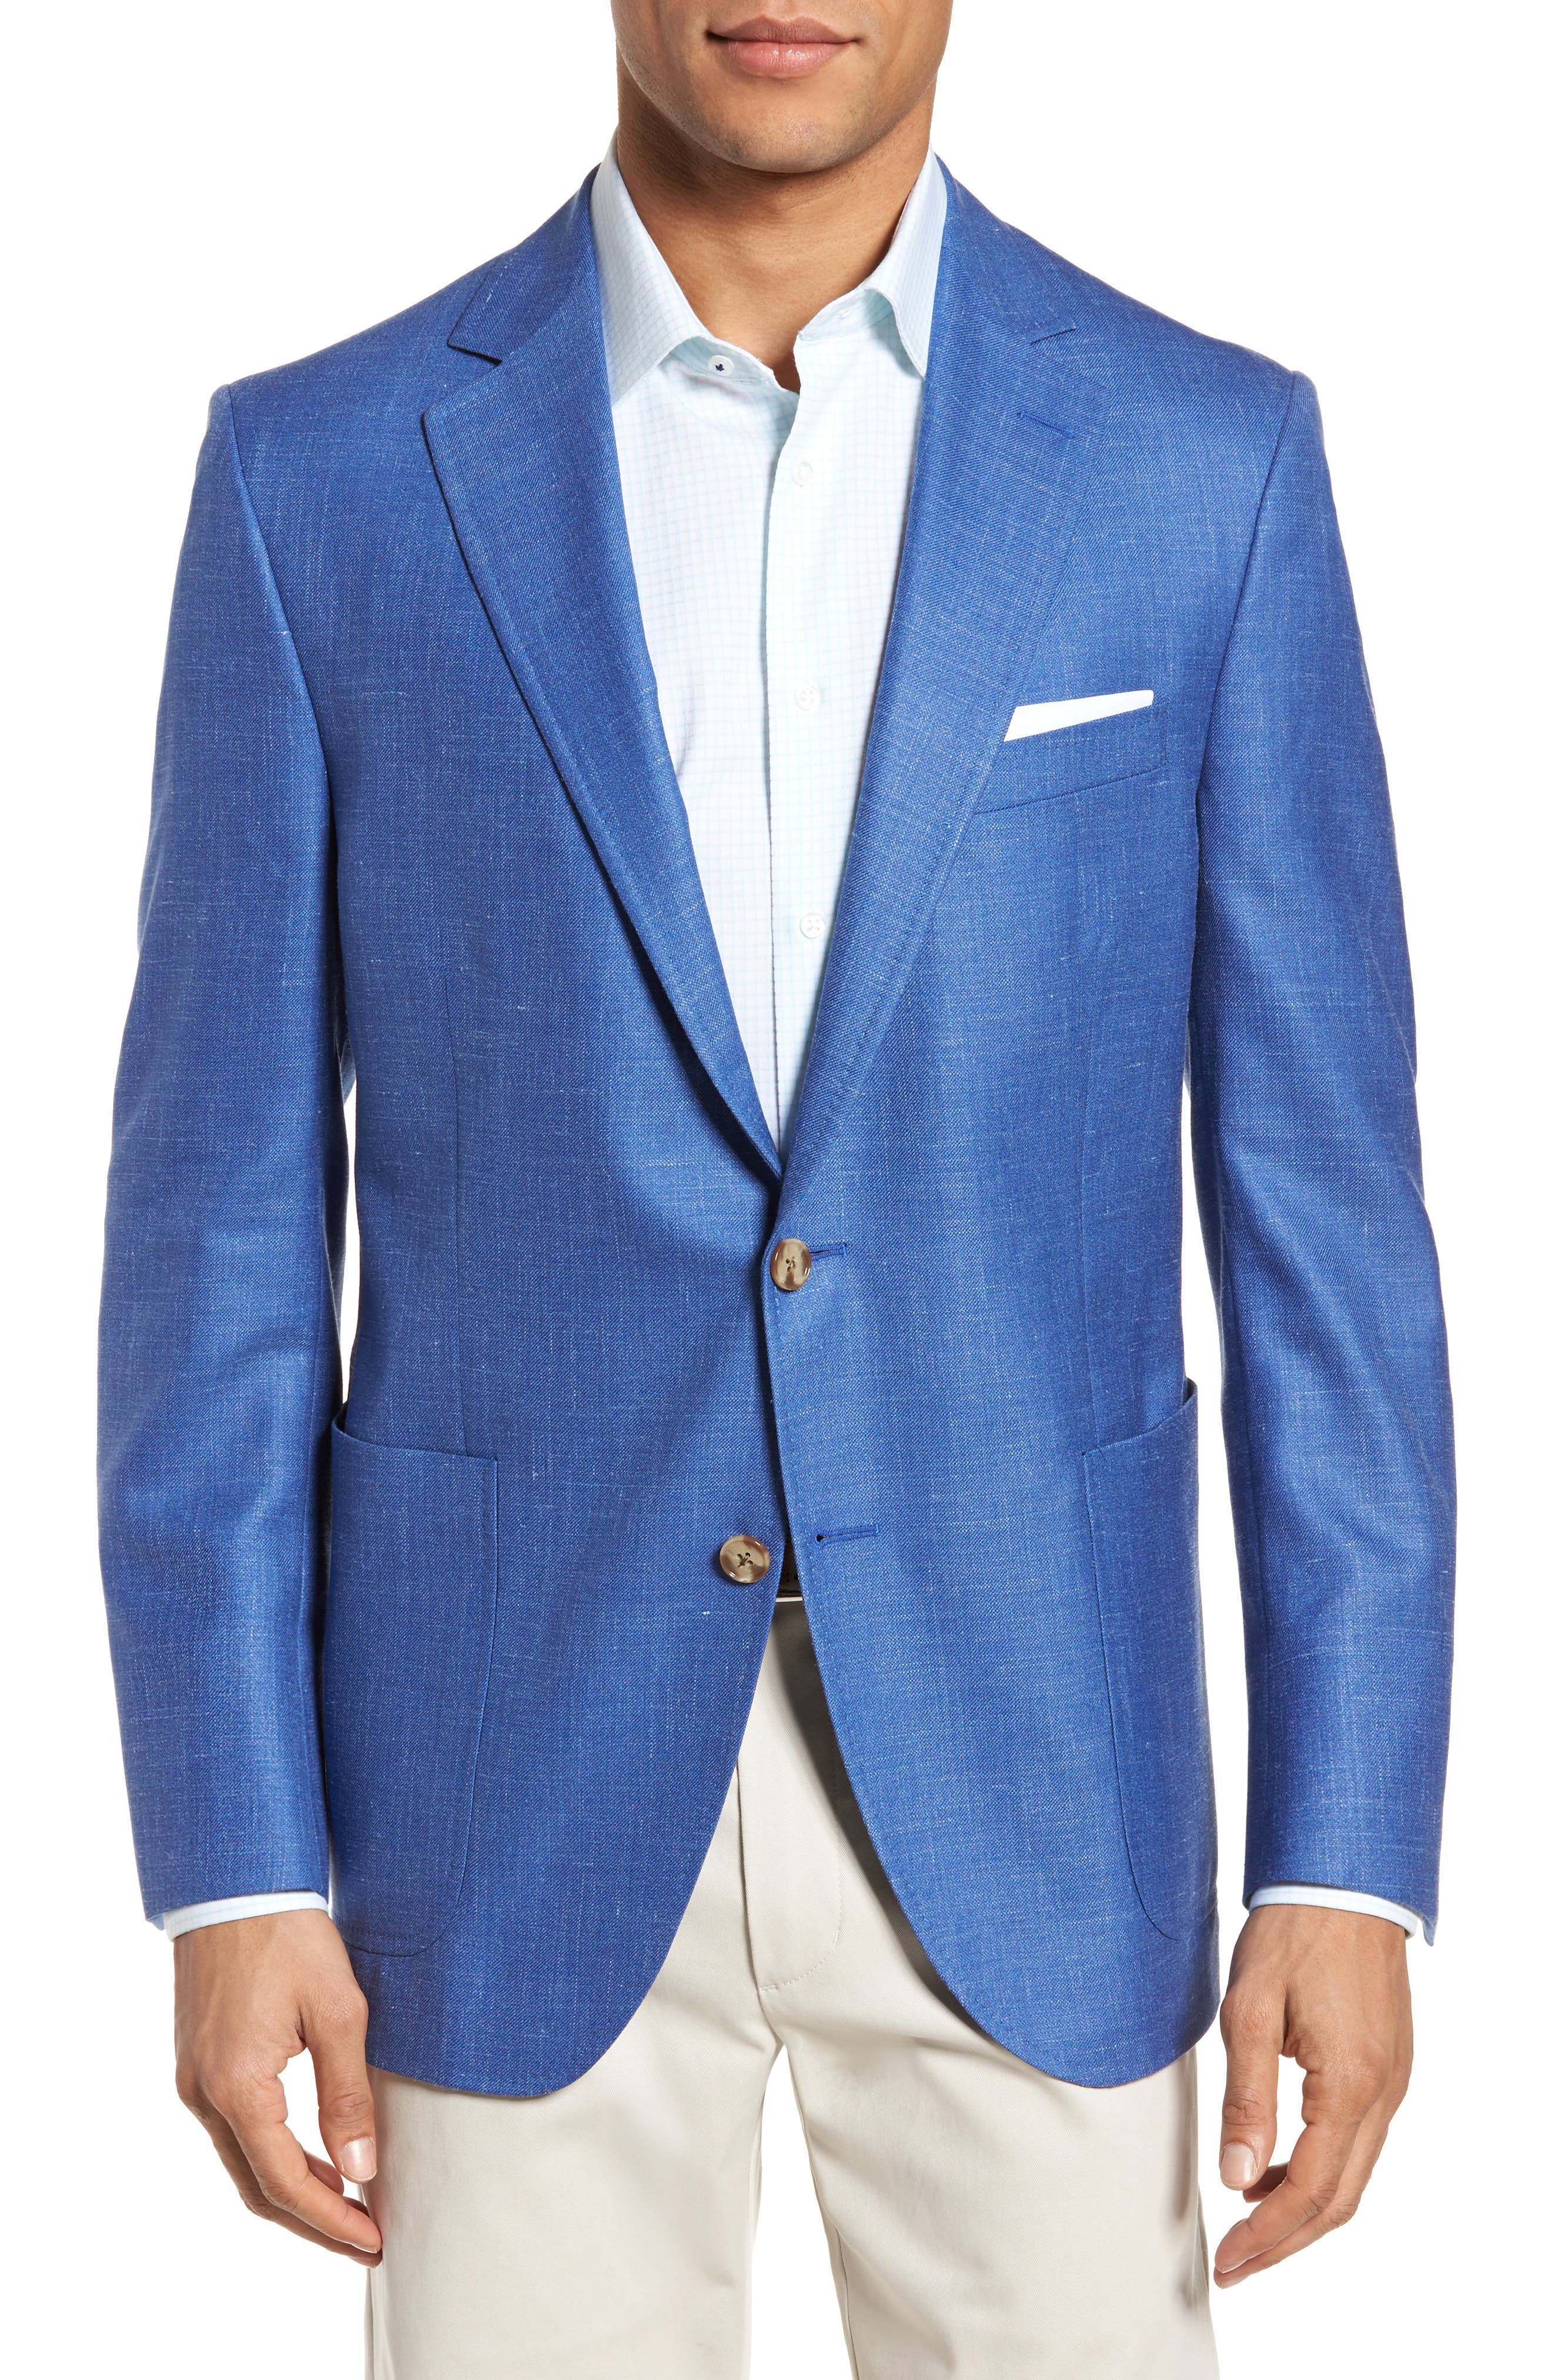 Alternate Image 1 Selected - Peter Millar Classic Fit Wool Blend Blazer